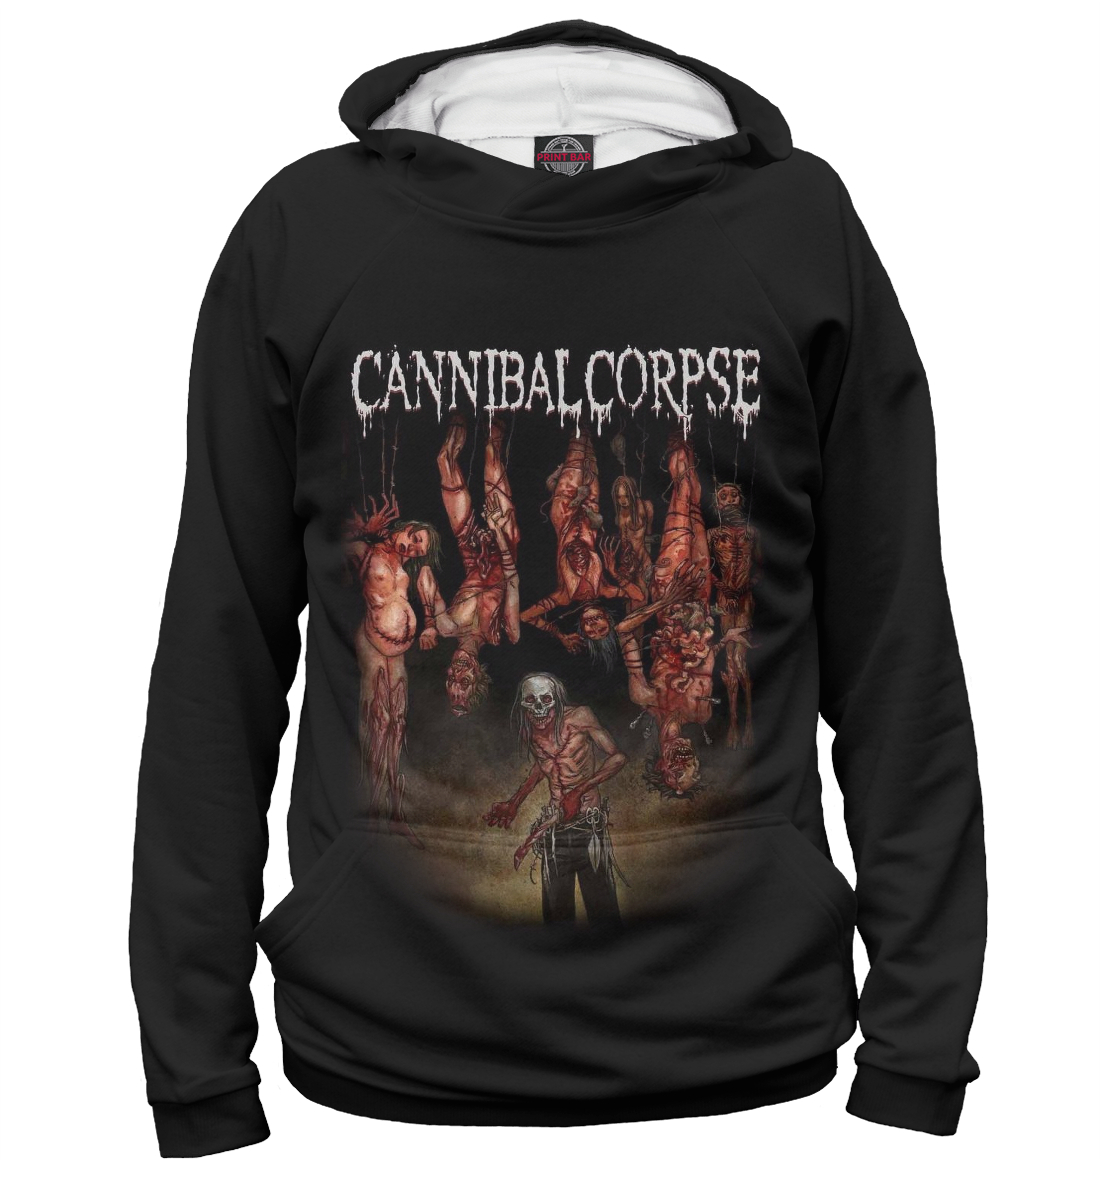 Купить Cannibal Corpse, Printbar, Худи, MZK-302466-hud-2